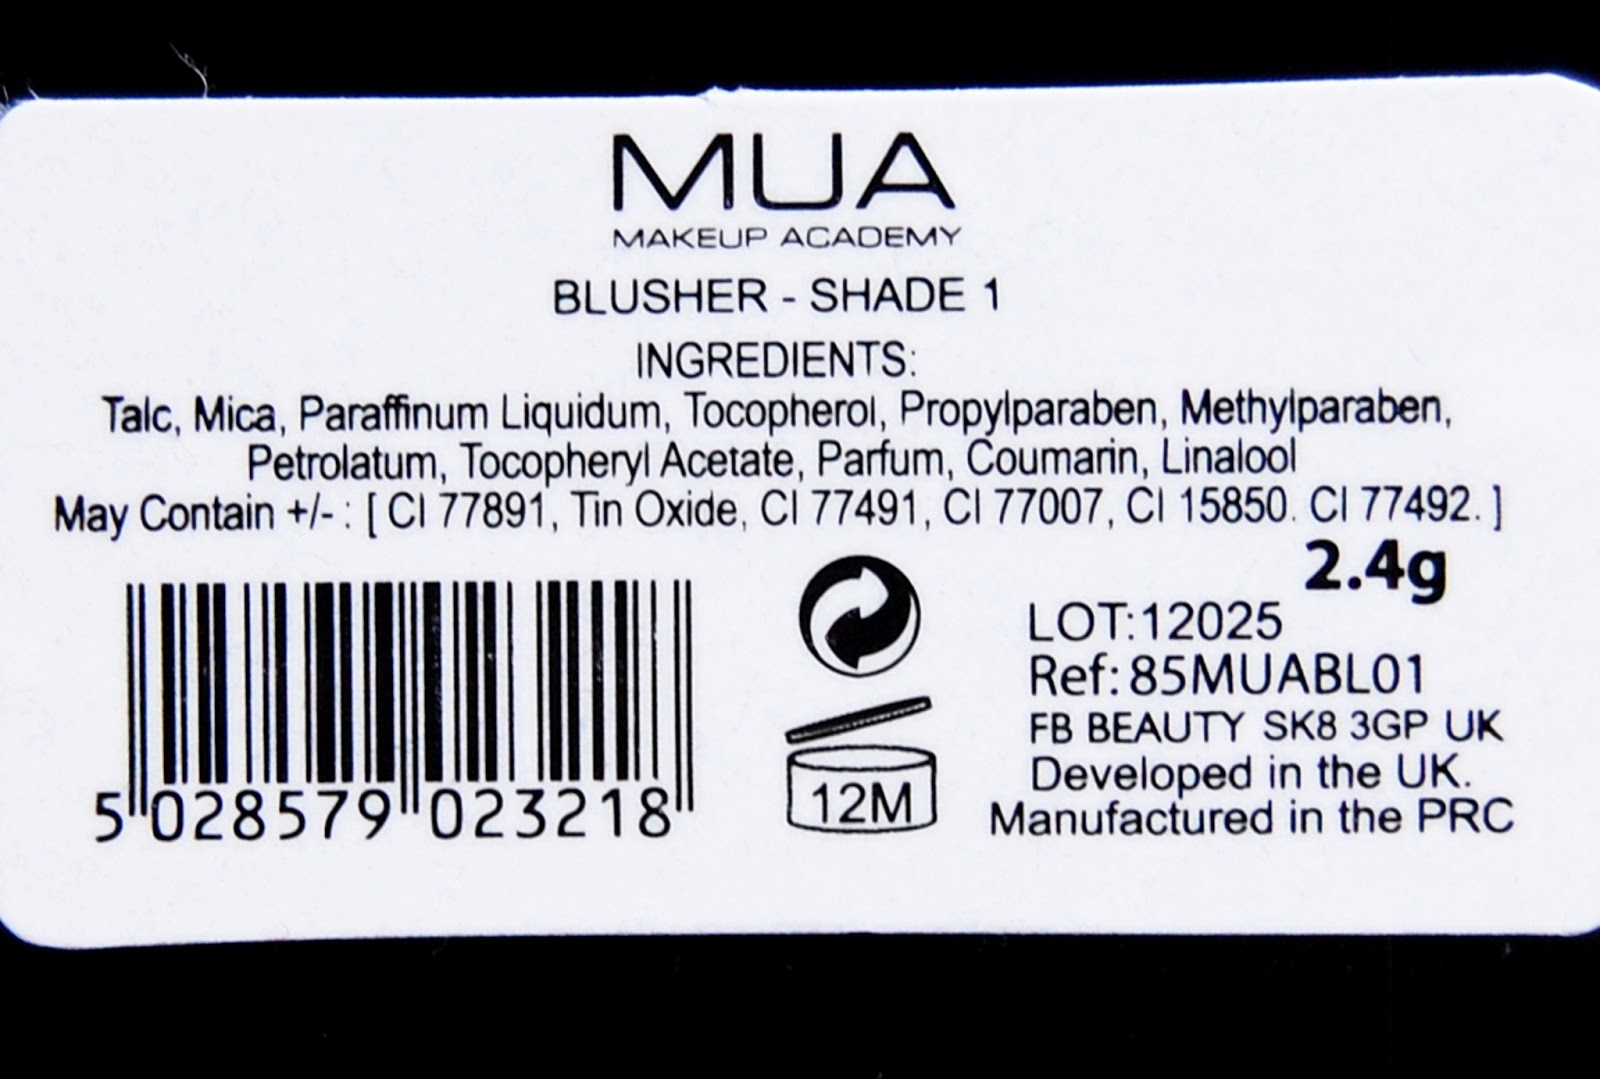 MUA Blusher Shade 1 Ingredients